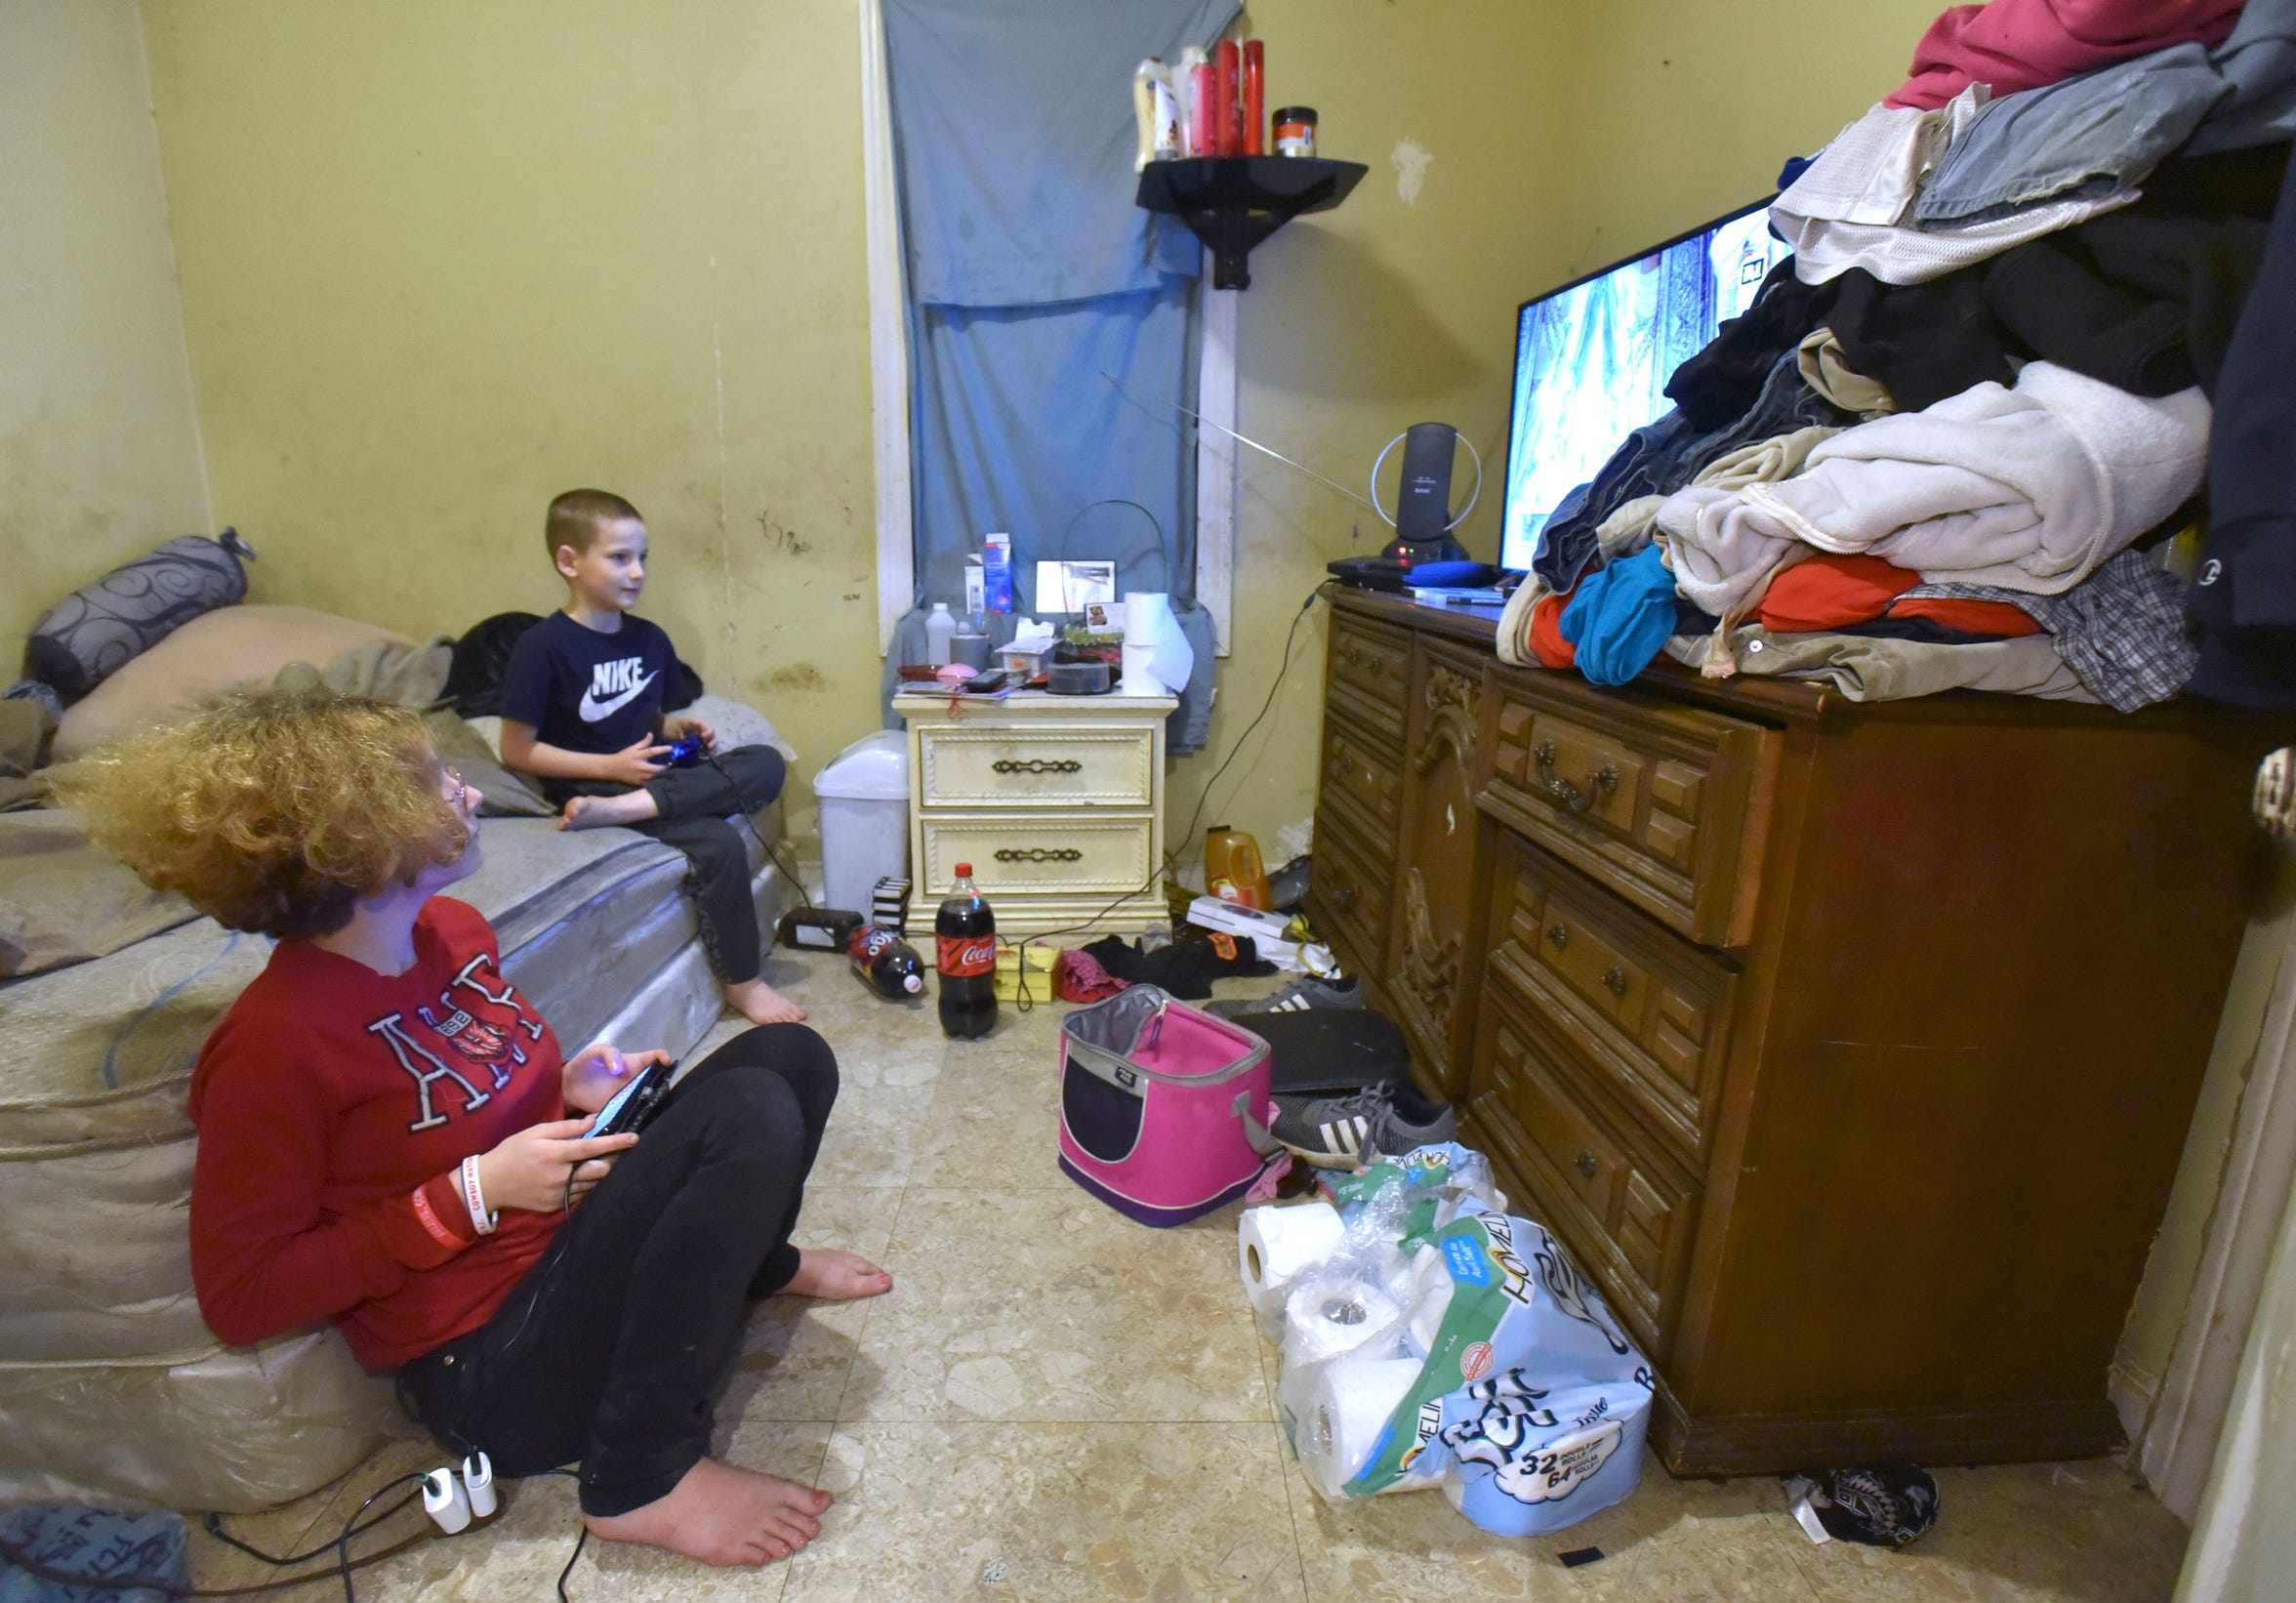 Shashana Gutierrez, left, 14, and Robert 'Chuncky' Anderson,  9,  play video games in the parents' bedroom.